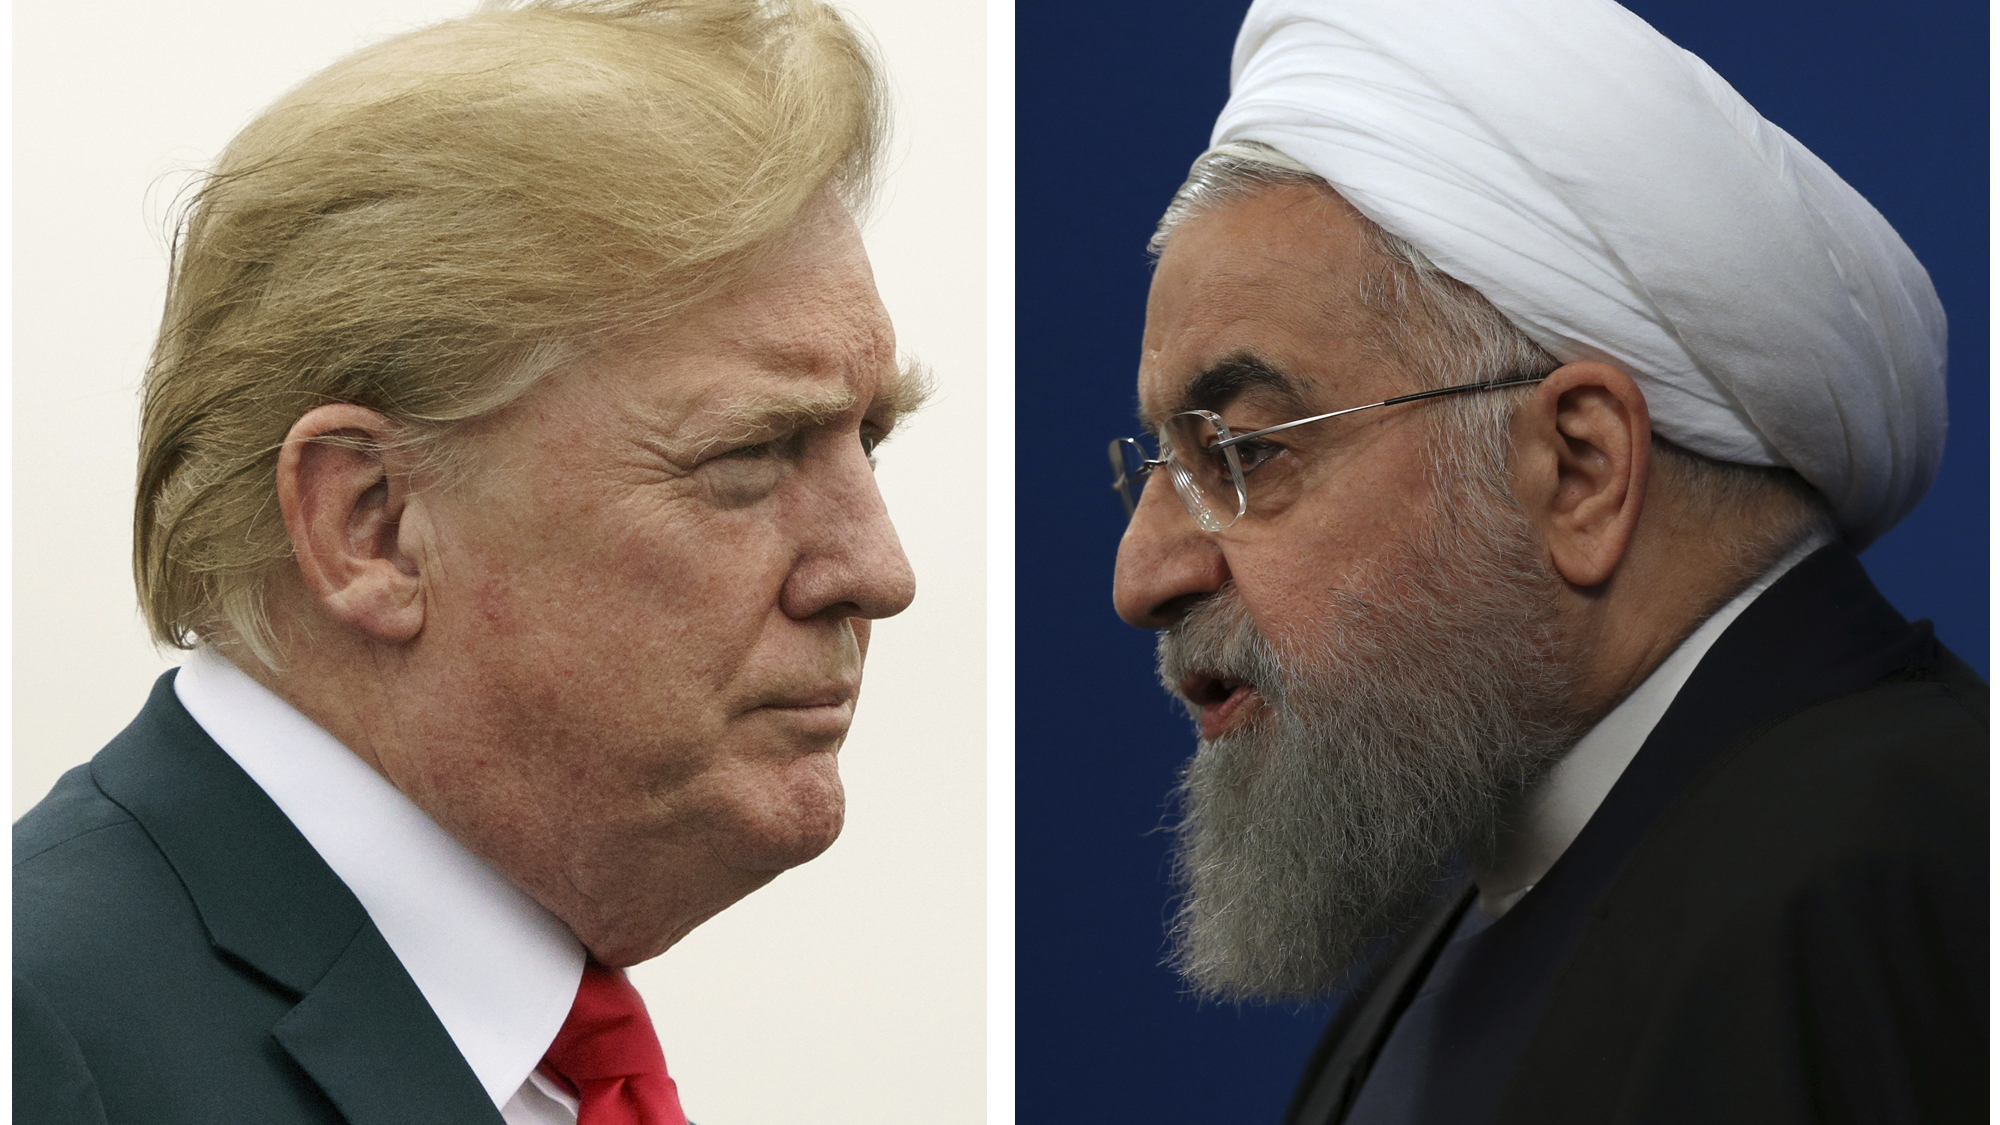 Trump To Iran's President Rouhani: 'NEVER, EVER THREATEN' The U.S. Again